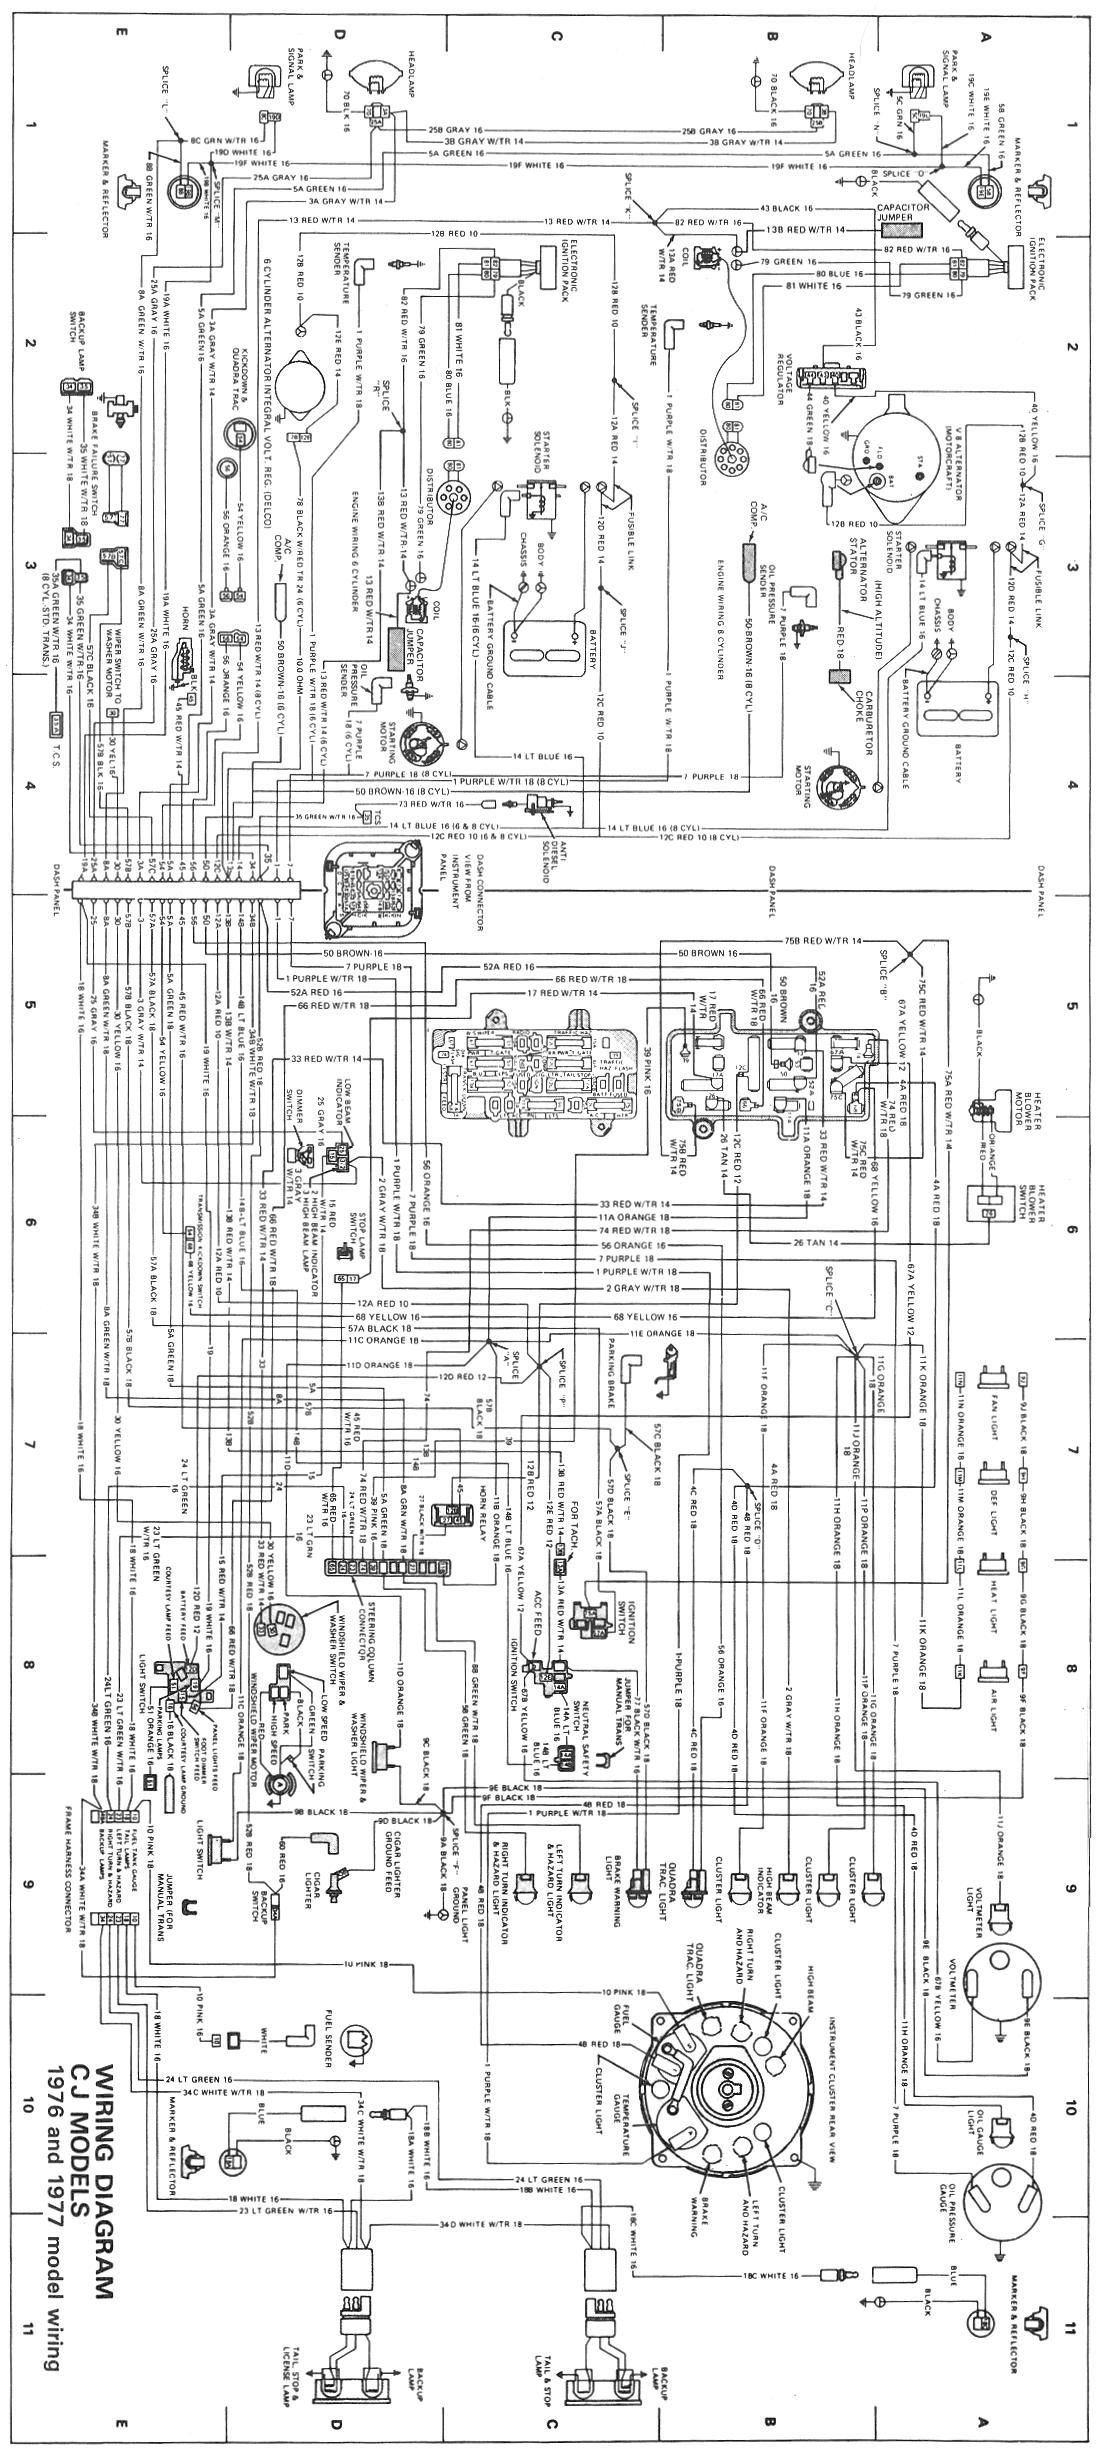 Jeep Wiring Diagrams - 1976 and 1977 CJ | Jeep cj7, Jeep, Jeep cj5 | 1980 Cj7 Wiring Diagram |  | Pinterest